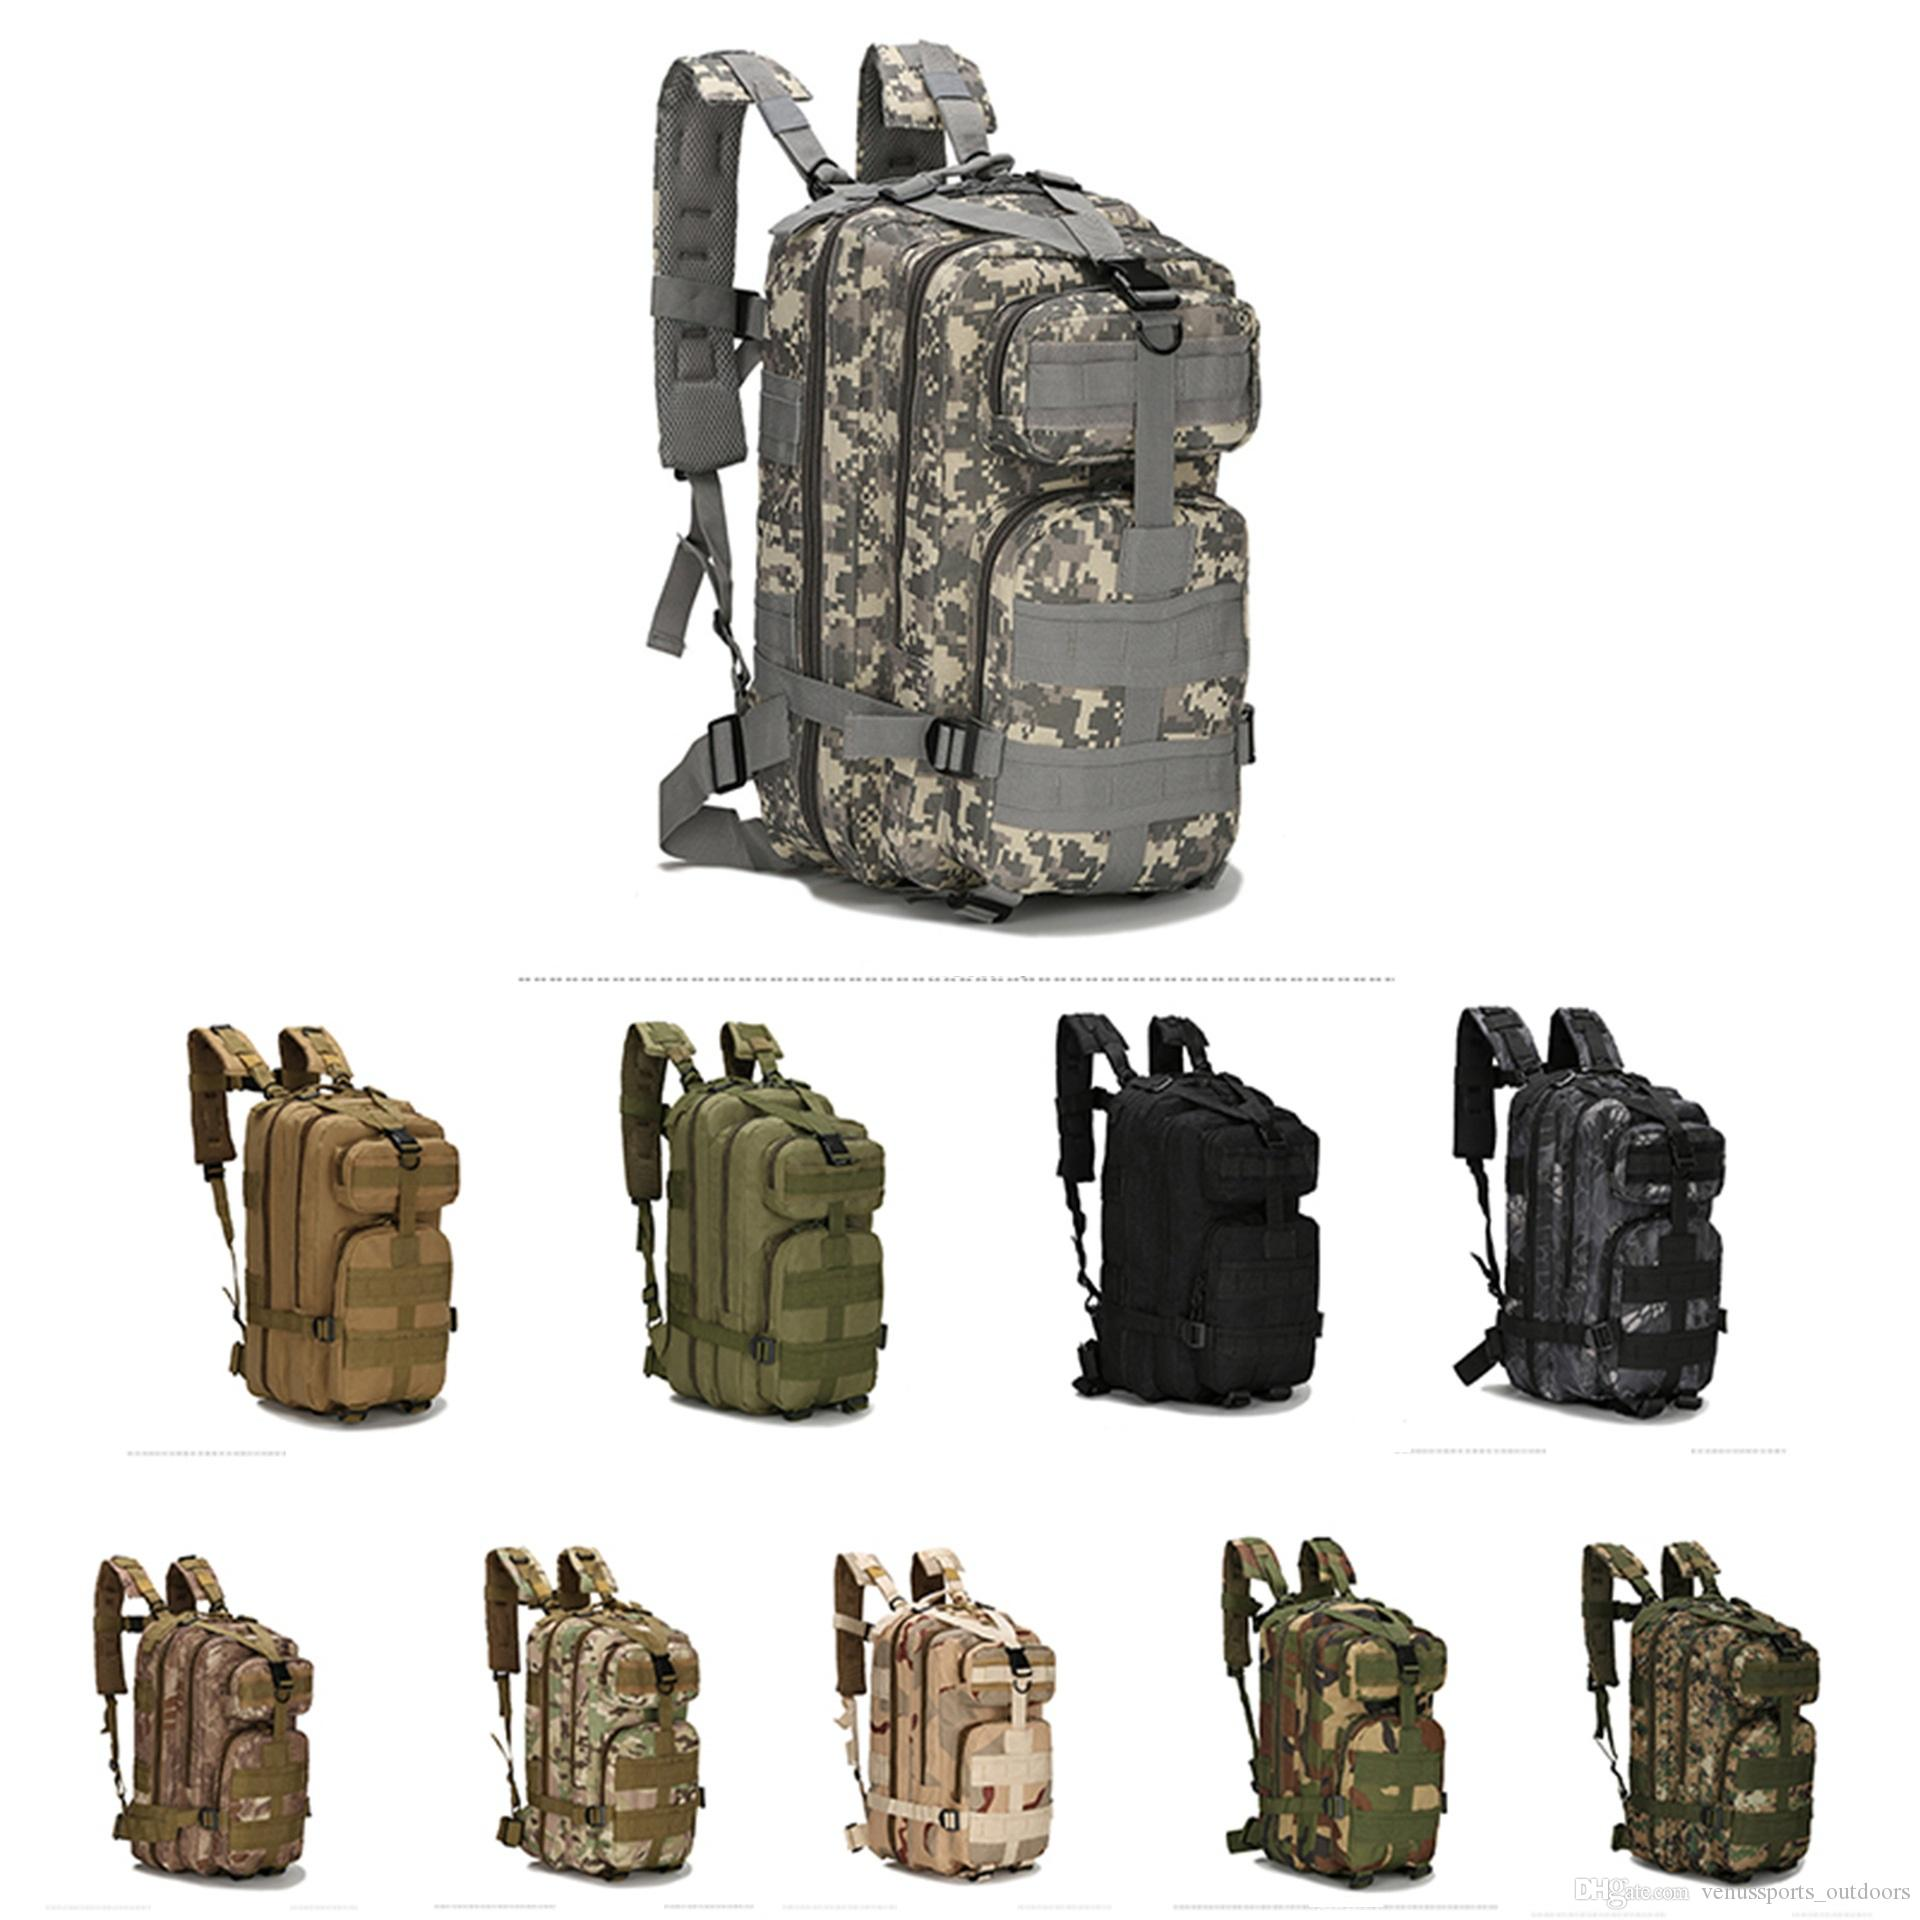 Fine Jewelry Outdoor Waist Leg Bag Waterproof Nylon Military Tactical Camping Hiking Backpack Pouch Hand Bag Military Bolsa Style Mochila